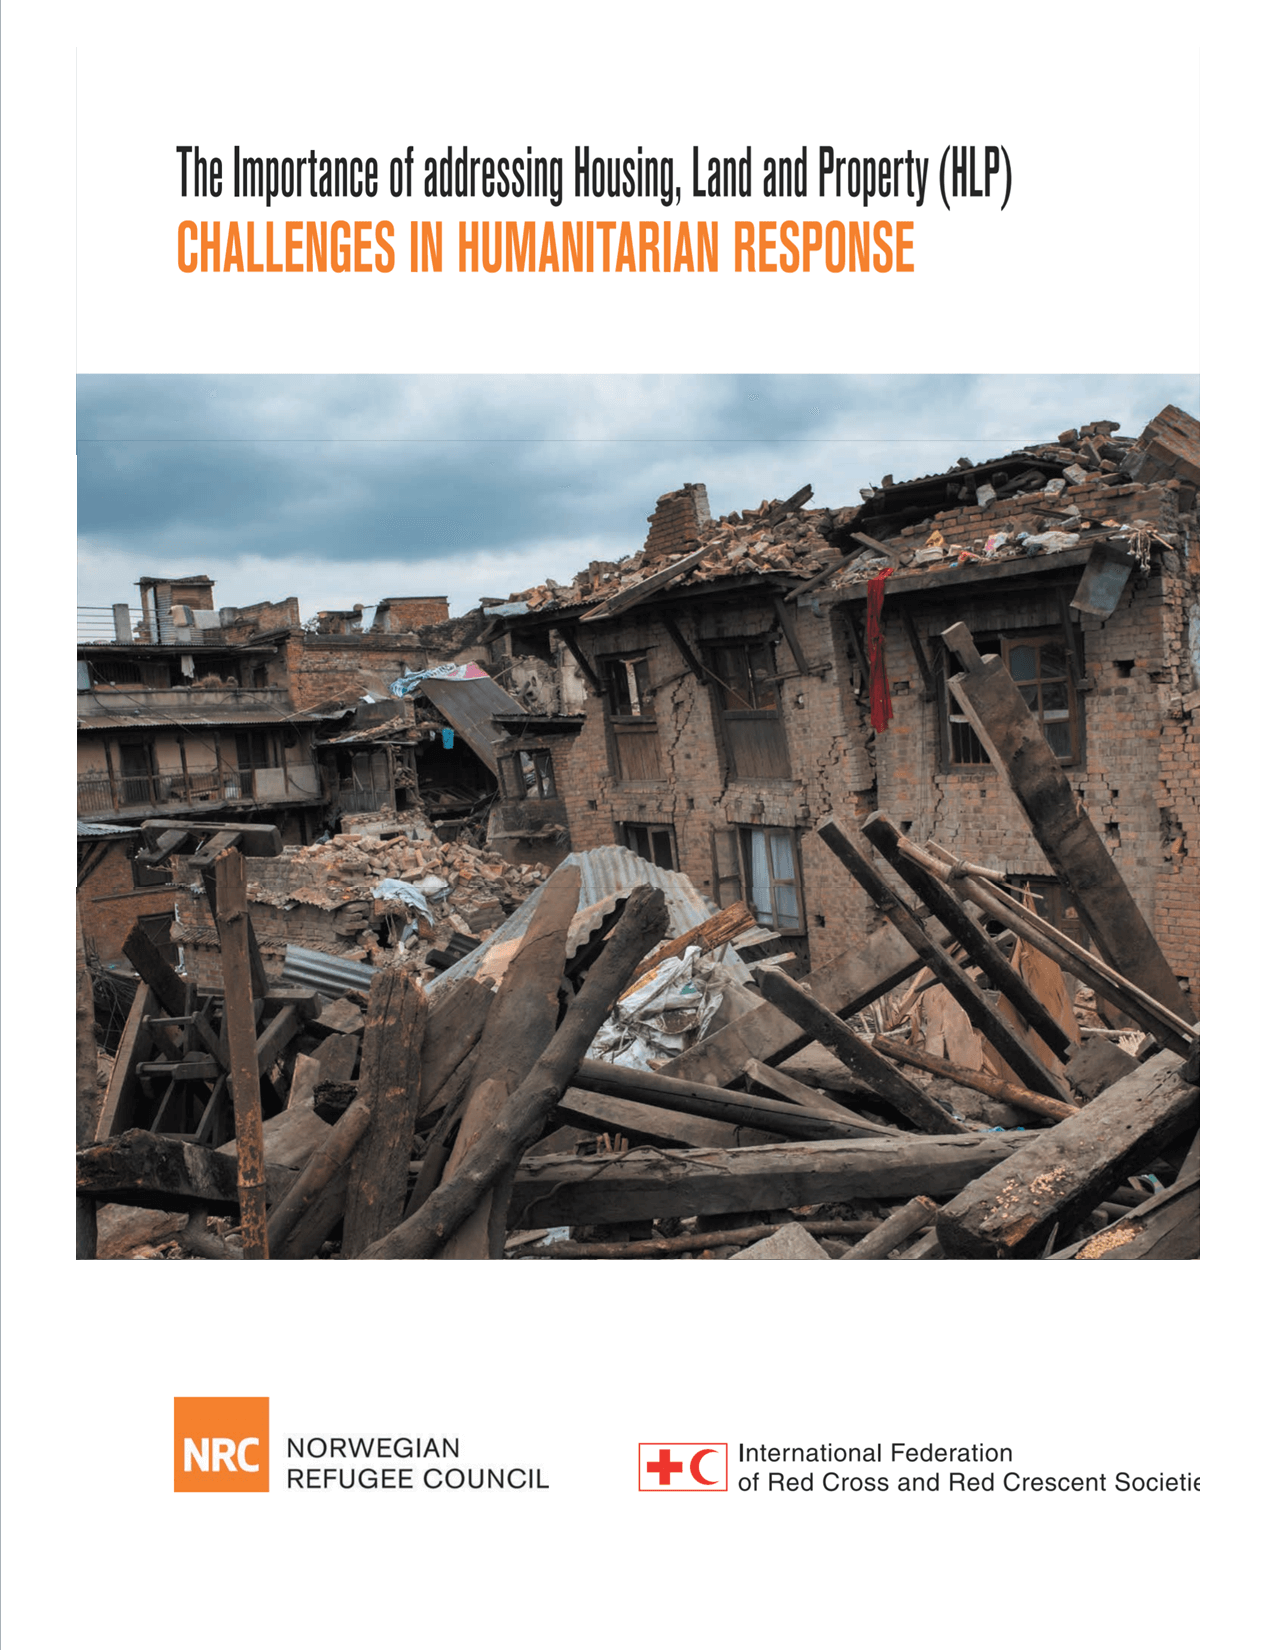 The Importance of addressing Housing, Land and Property (HLP) Challenges in Humanitarian Response